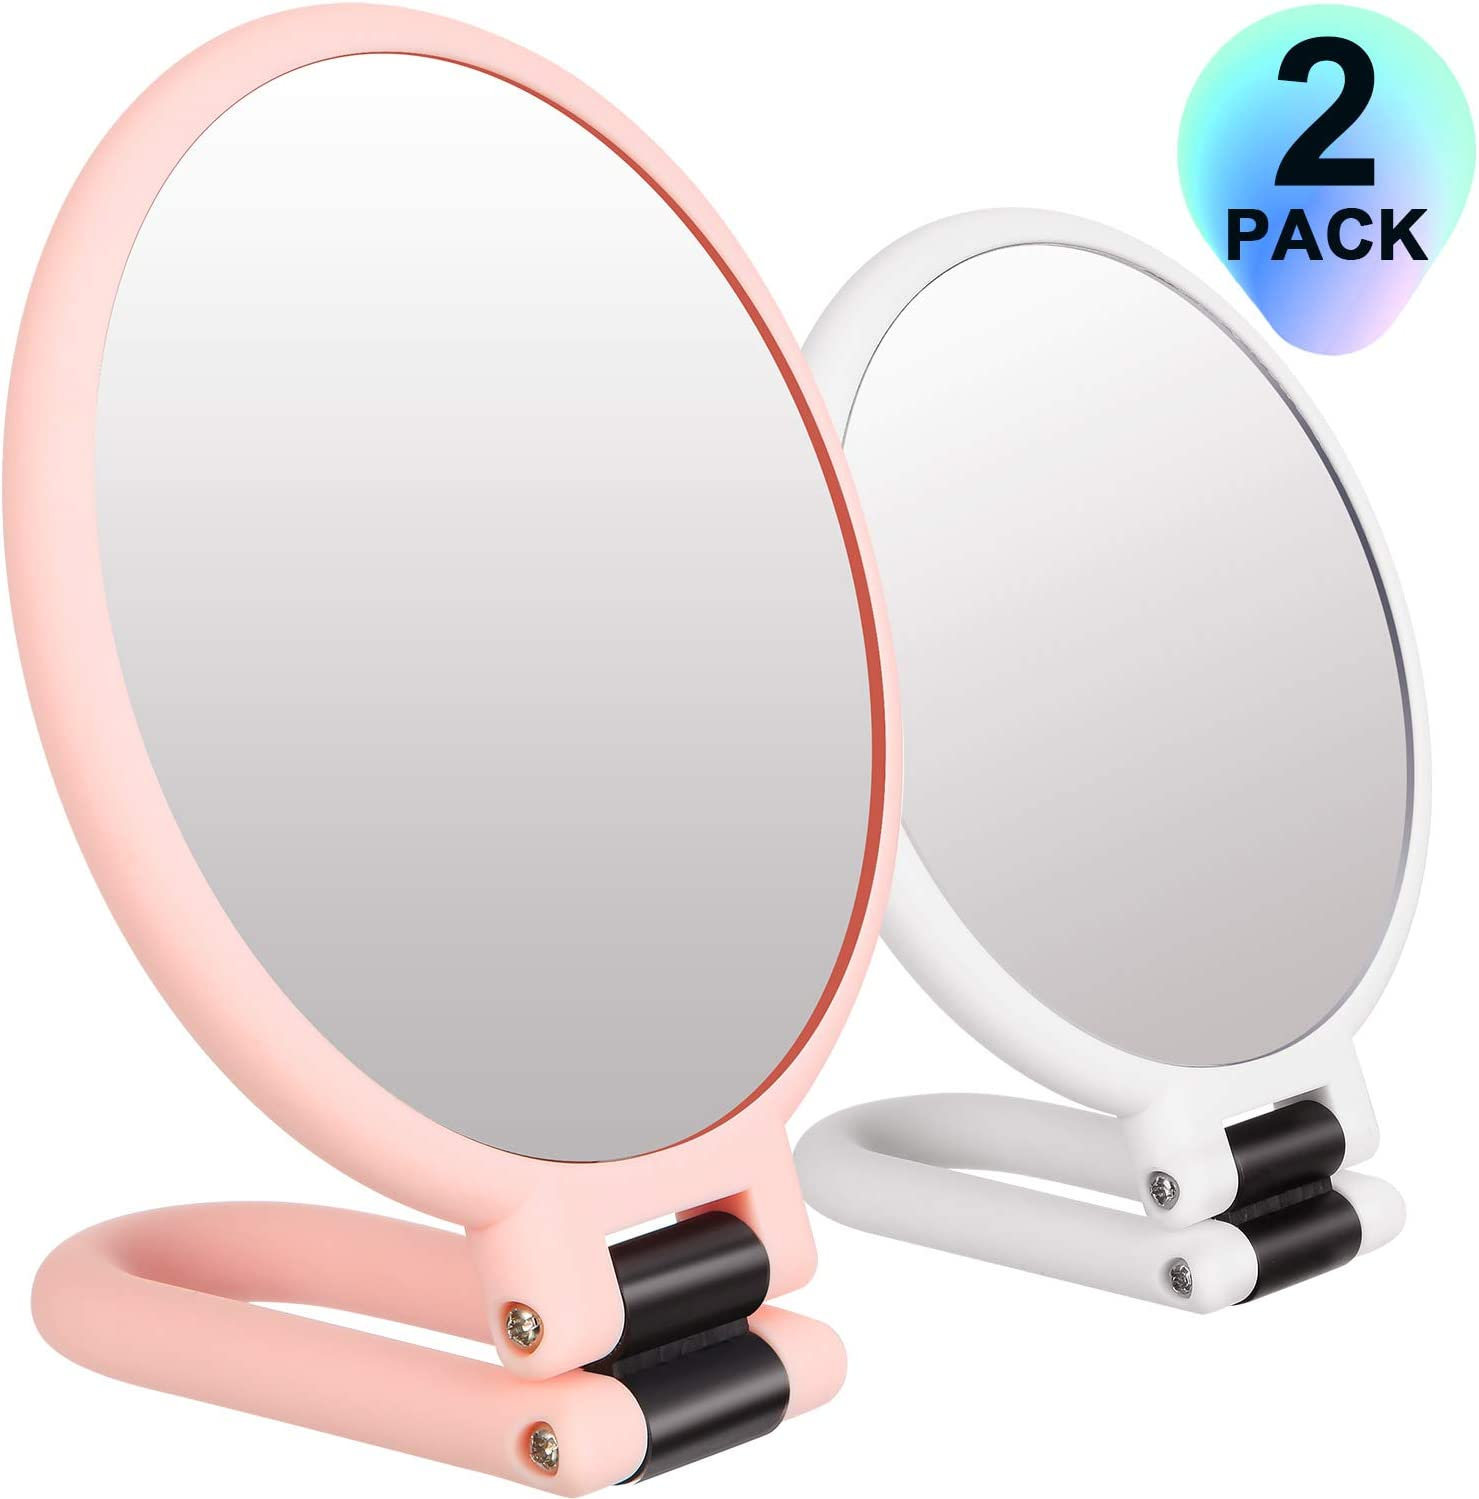 Frienda 2 Pieces 1x 15x Handheld Double Sided Magnifying Makeup Mirror Folding Makeup Mirror with Stand High Definition Magnified Mirror for Home Travel White and Pink